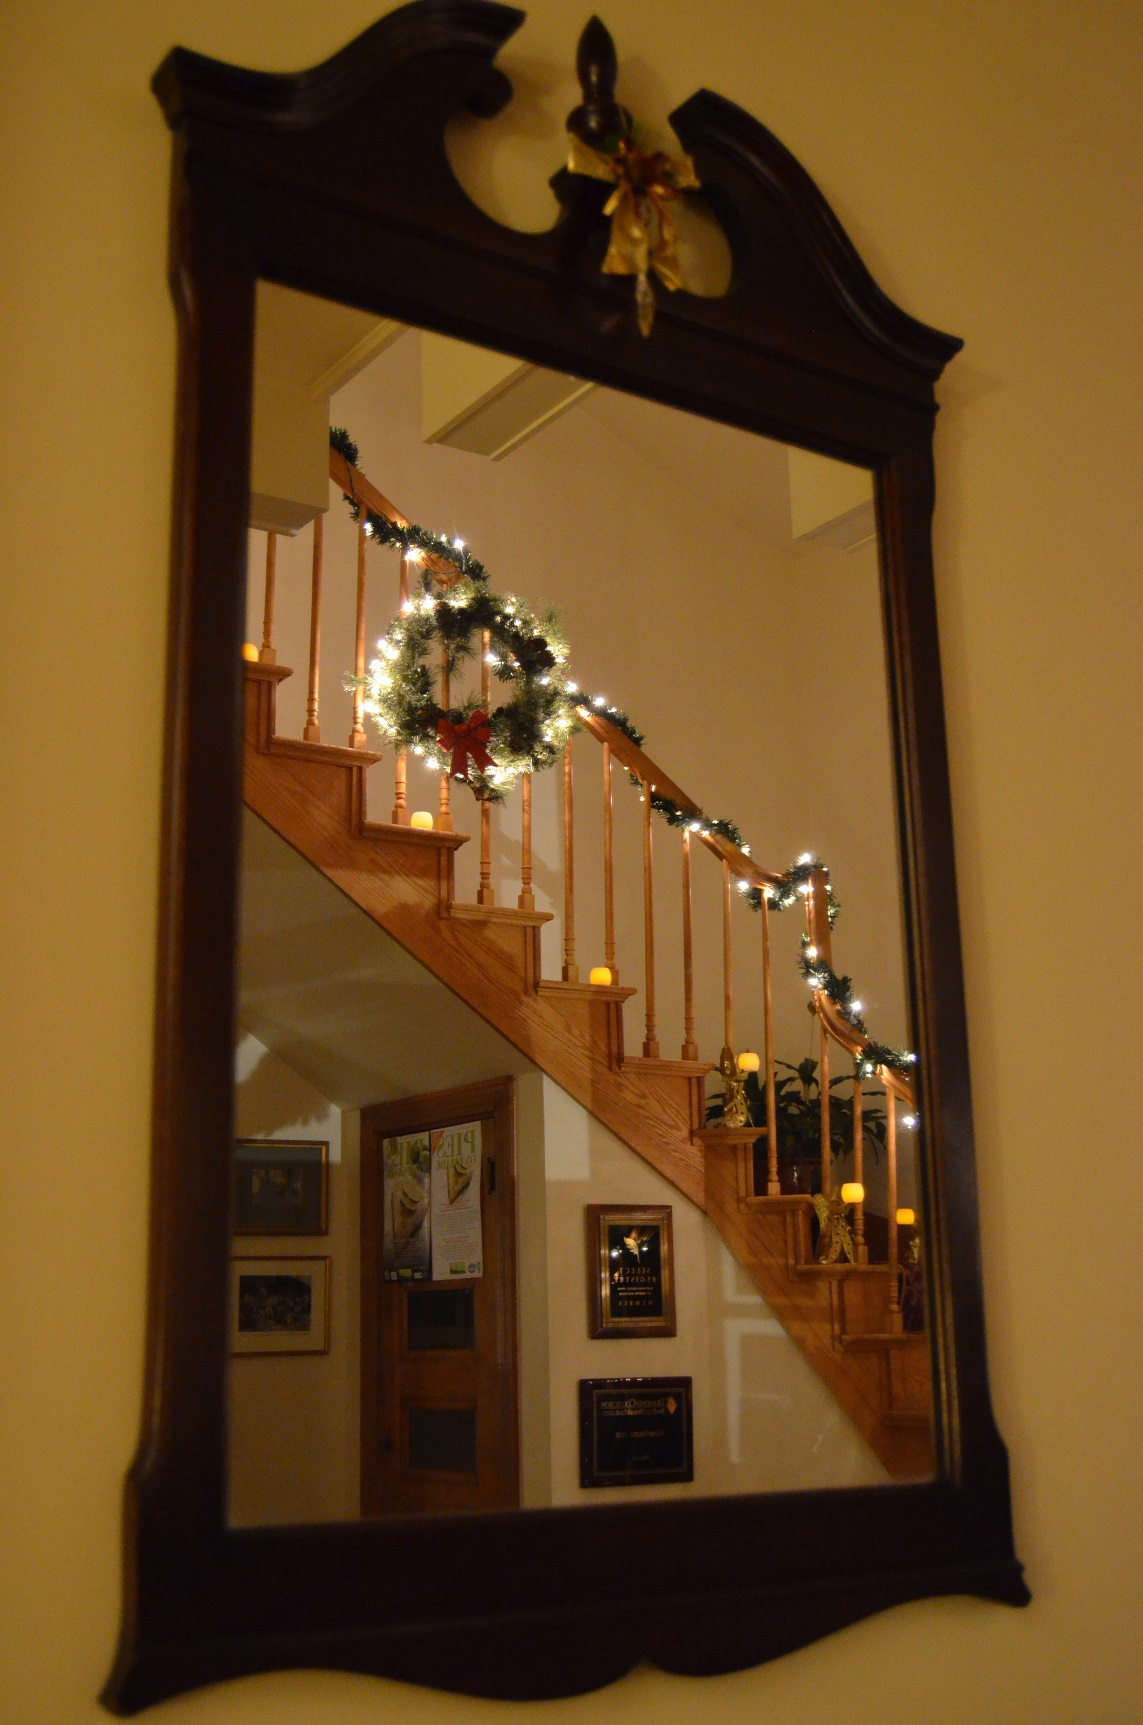 Even the grand hallway and staircase are decorated with lights and boughs.